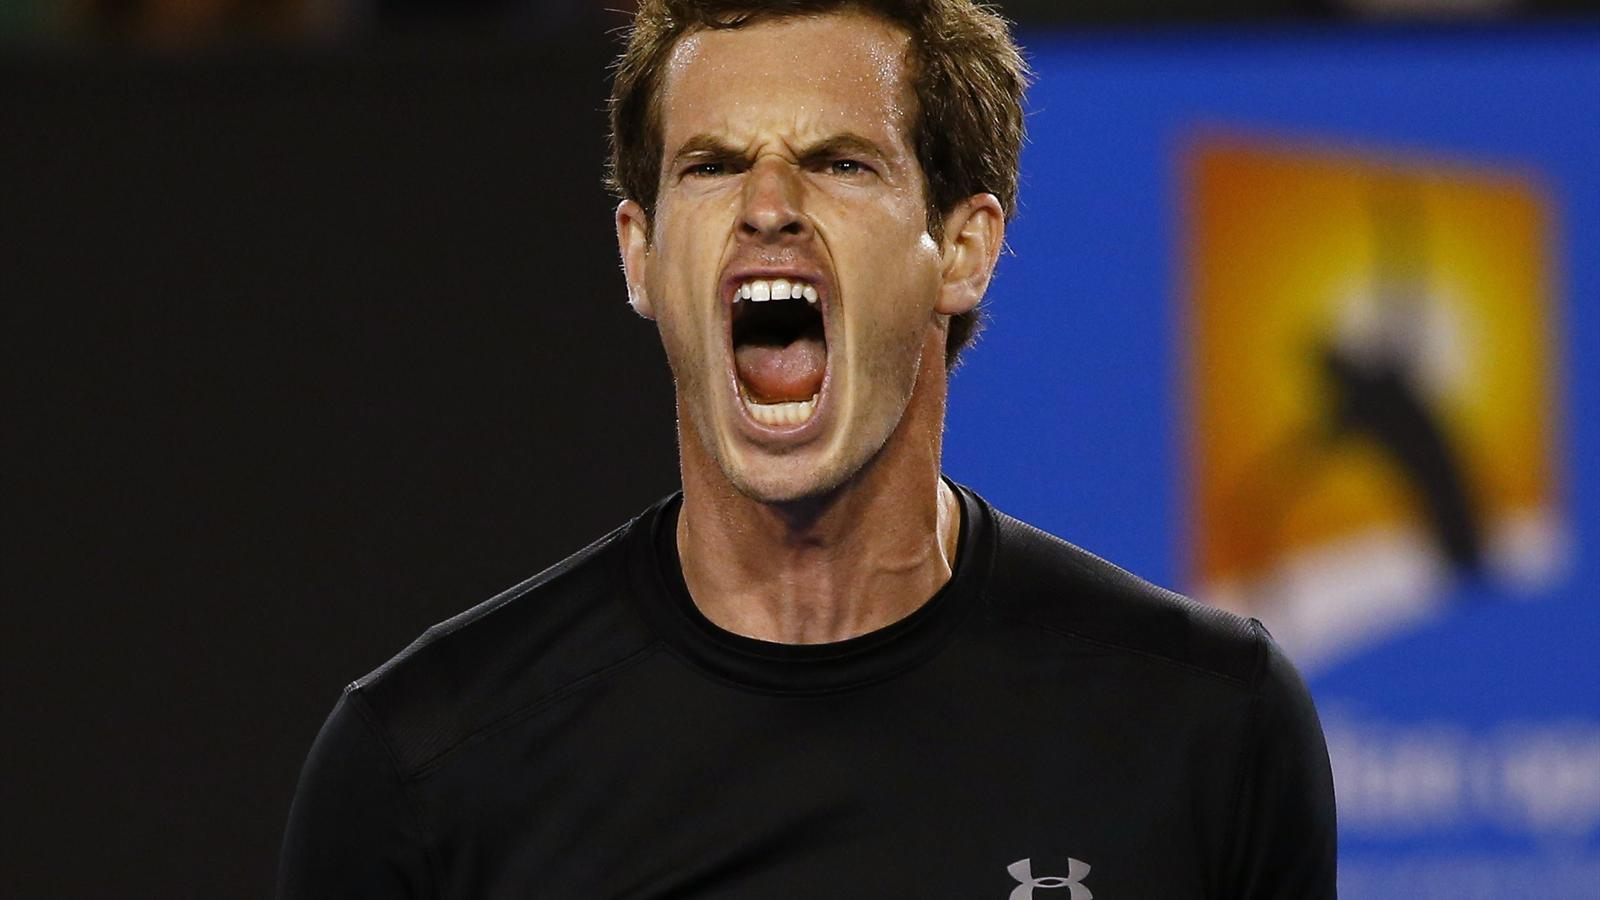 Andy Murray storms into quarter-finals after beating Grigor Dimitrov in classic